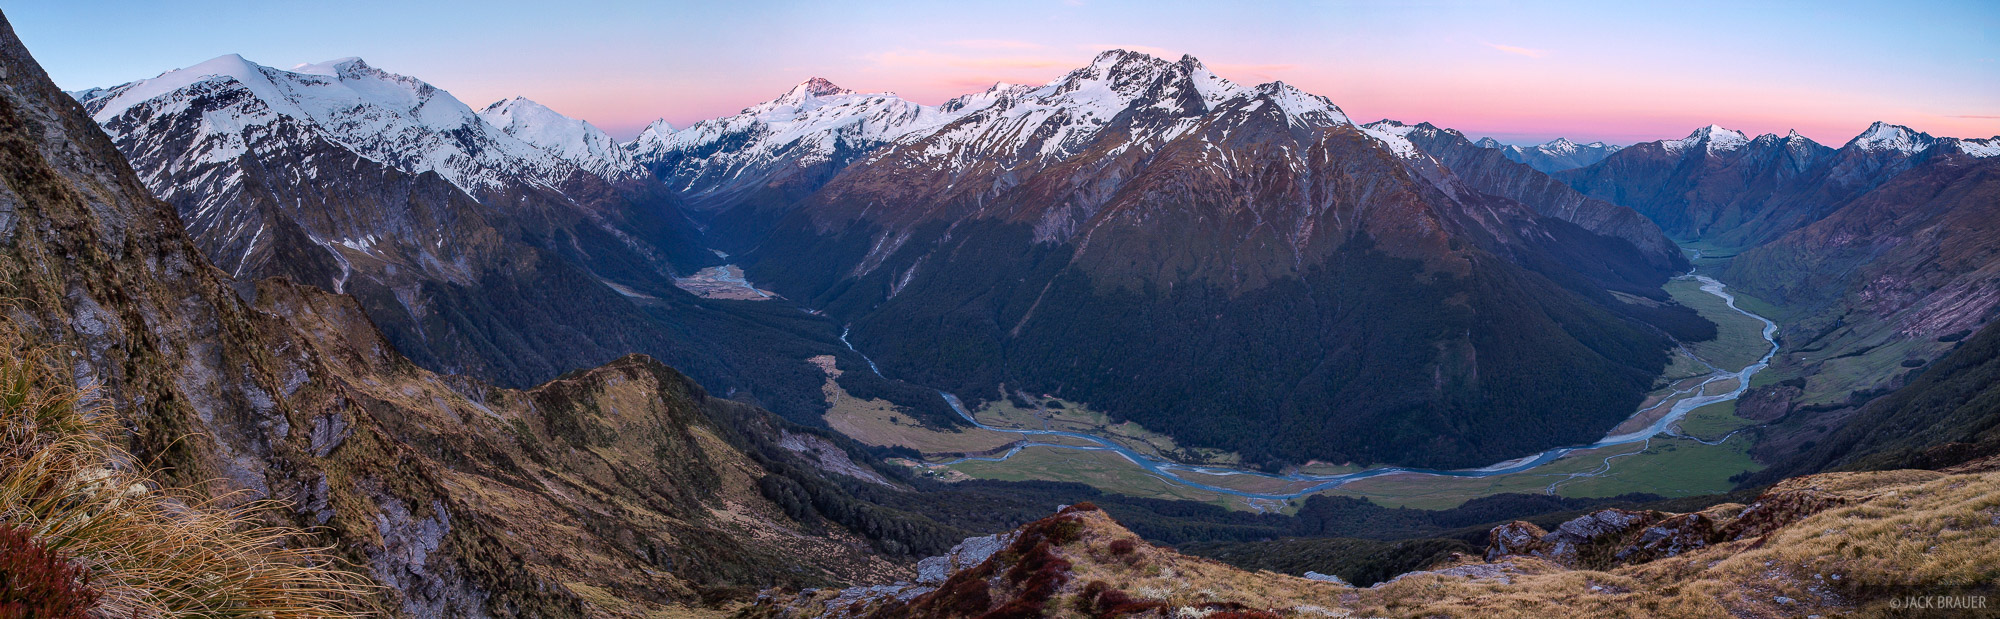 Matukituki, panorama, Mt. Aspiring, New Zealand